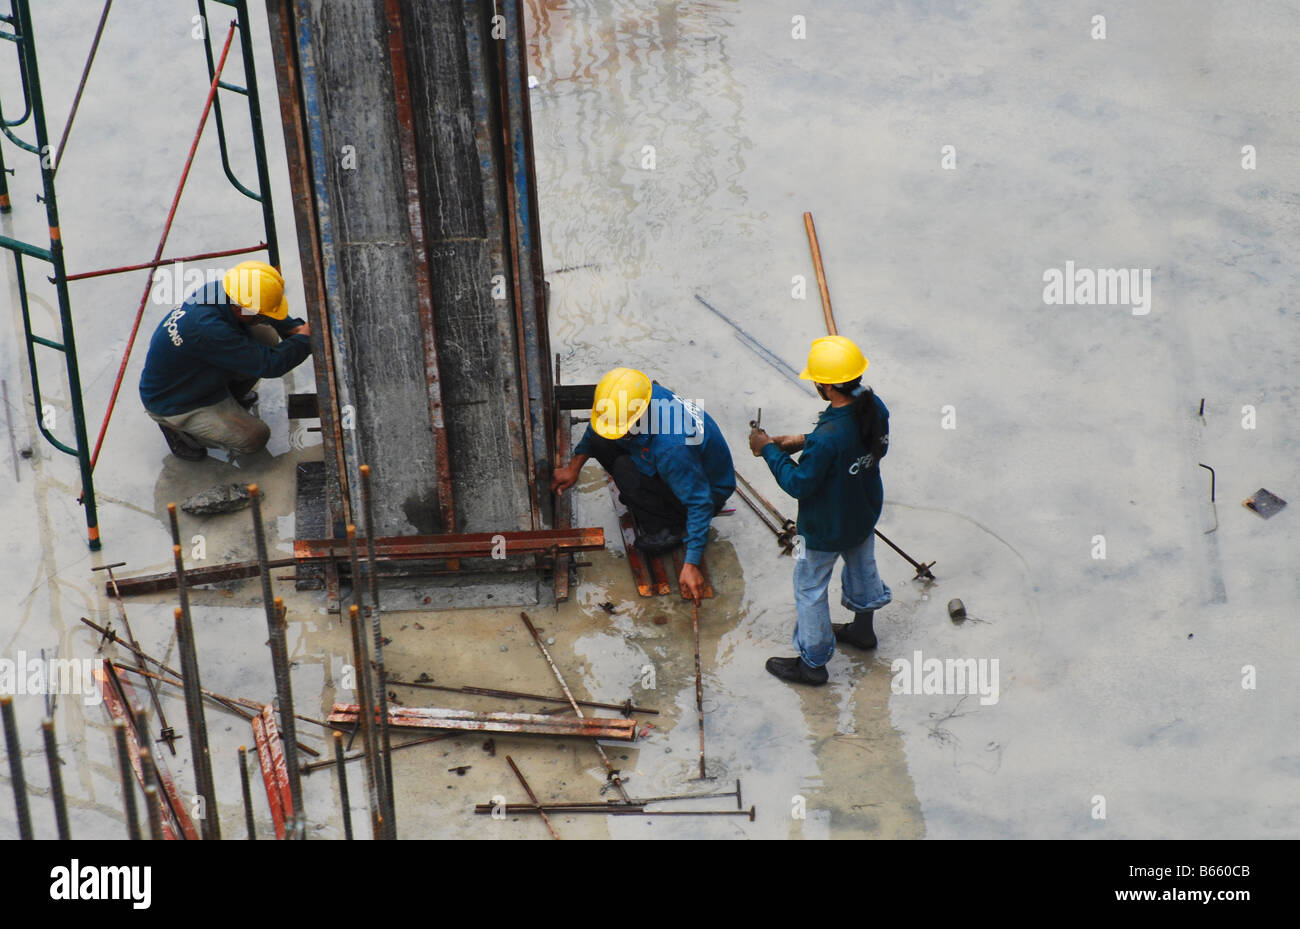 workers check reinforced steel construction in the rain hotel stock photo 21030363 alamy. Black Bedroom Furniture Sets. Home Design Ideas